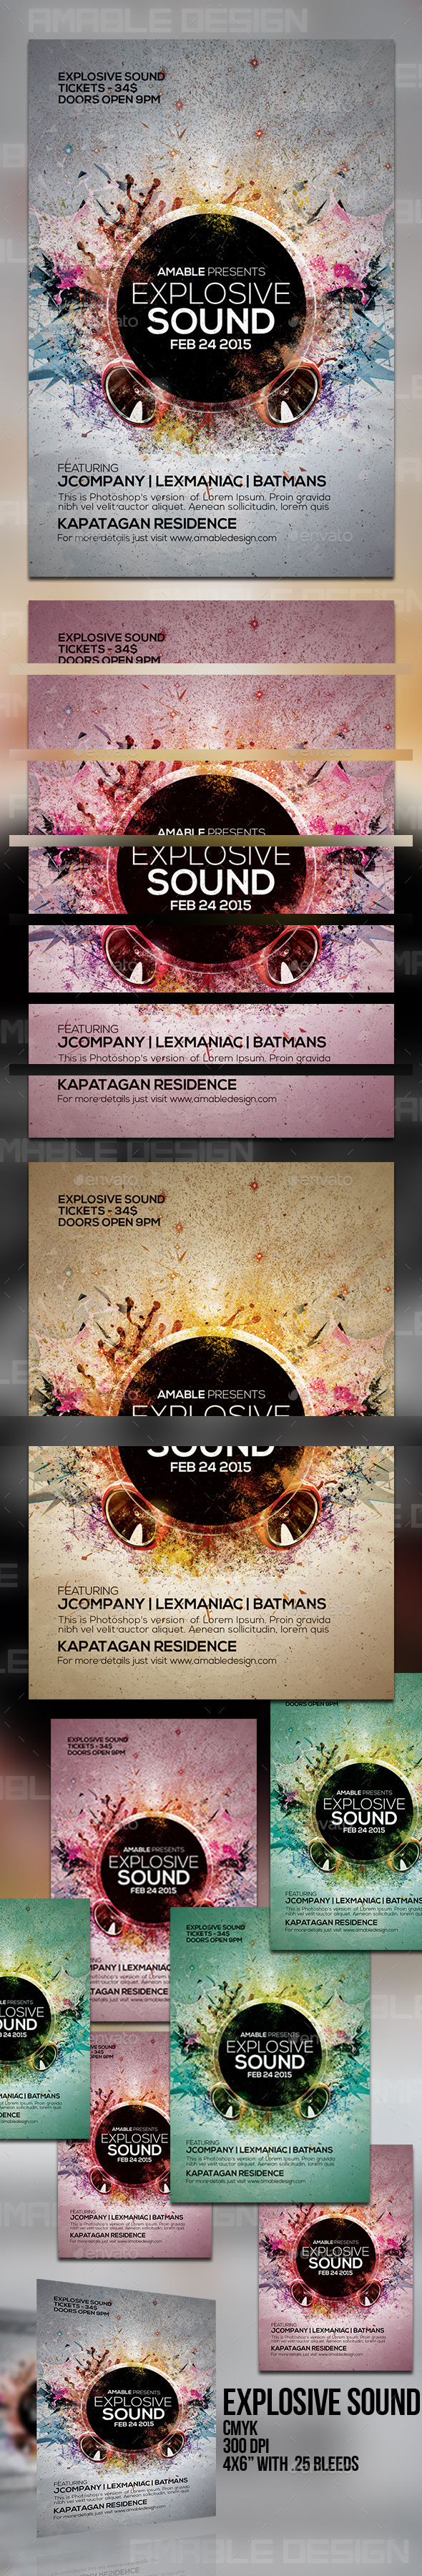 GraphicRiver Explosive Sound Flyer 10443008